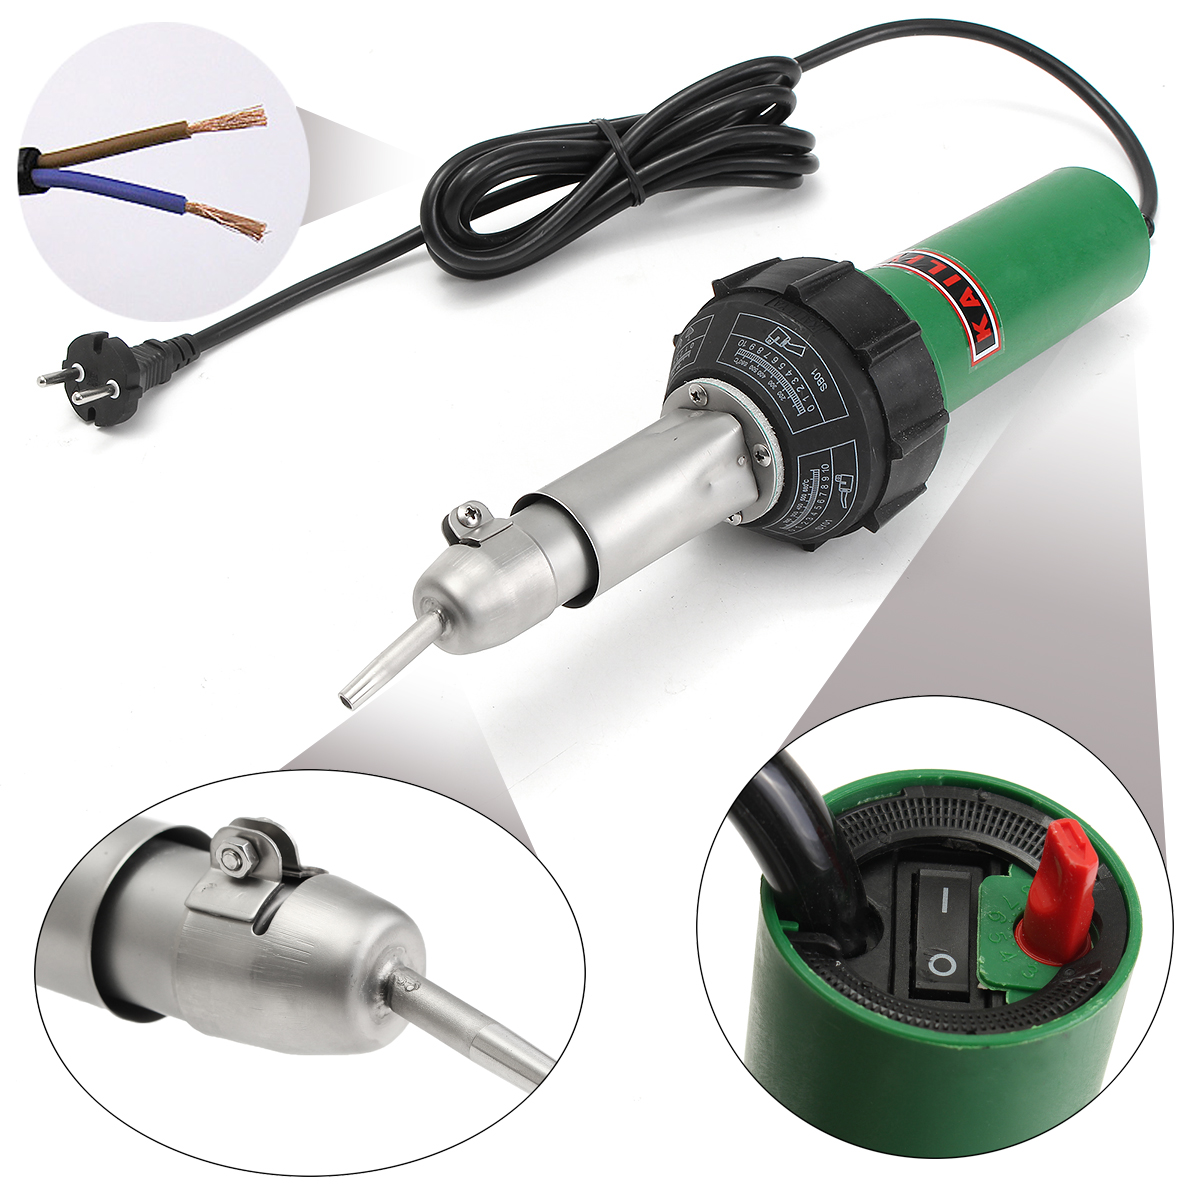 1500W Plastic Welding Tool W/ 2 Speed Welding Nozzle And 1 HE Roller Hot Air Welding Torch Kits